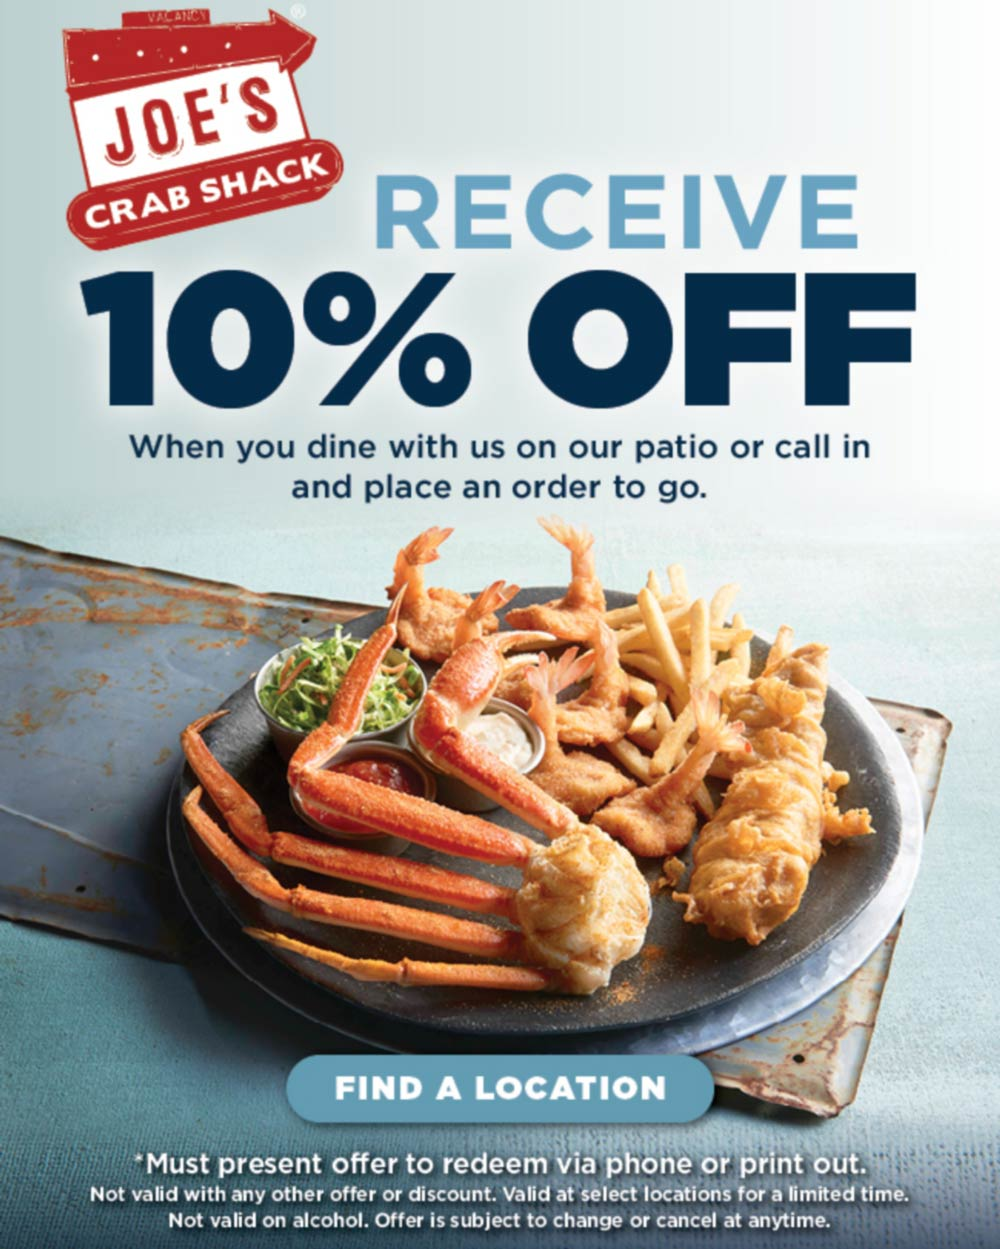 Joes Crab Shack coupons & promo code for [January 2021]